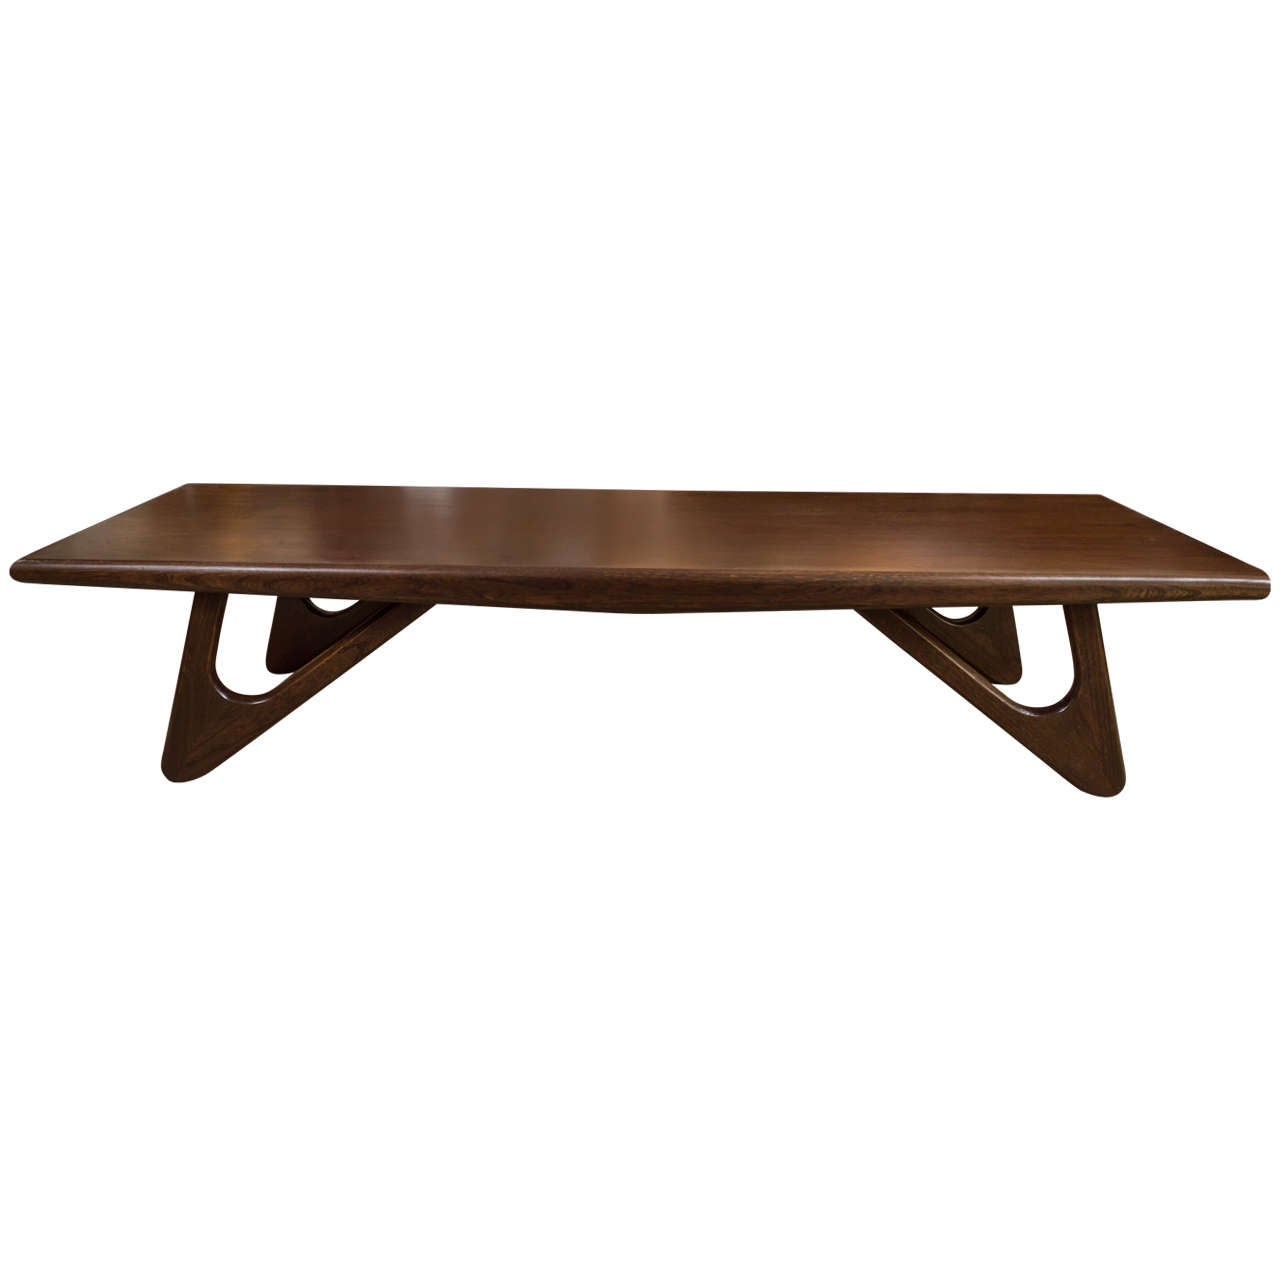 1950s Walnut Coffee Table In The Style Of Adrian Pearsall